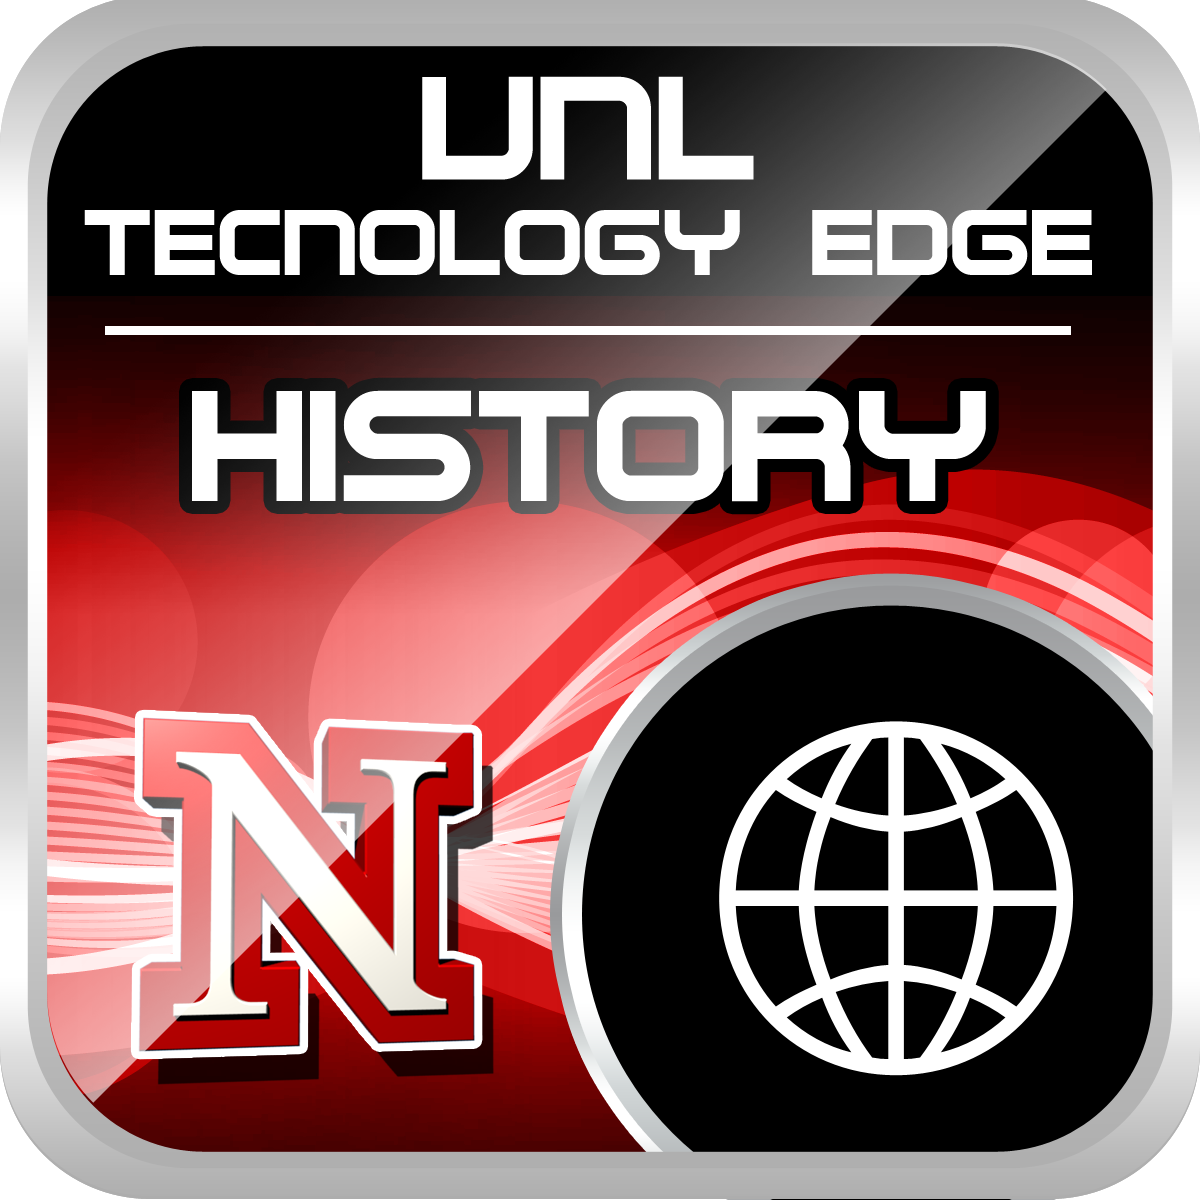 Tech EDGE - History Image